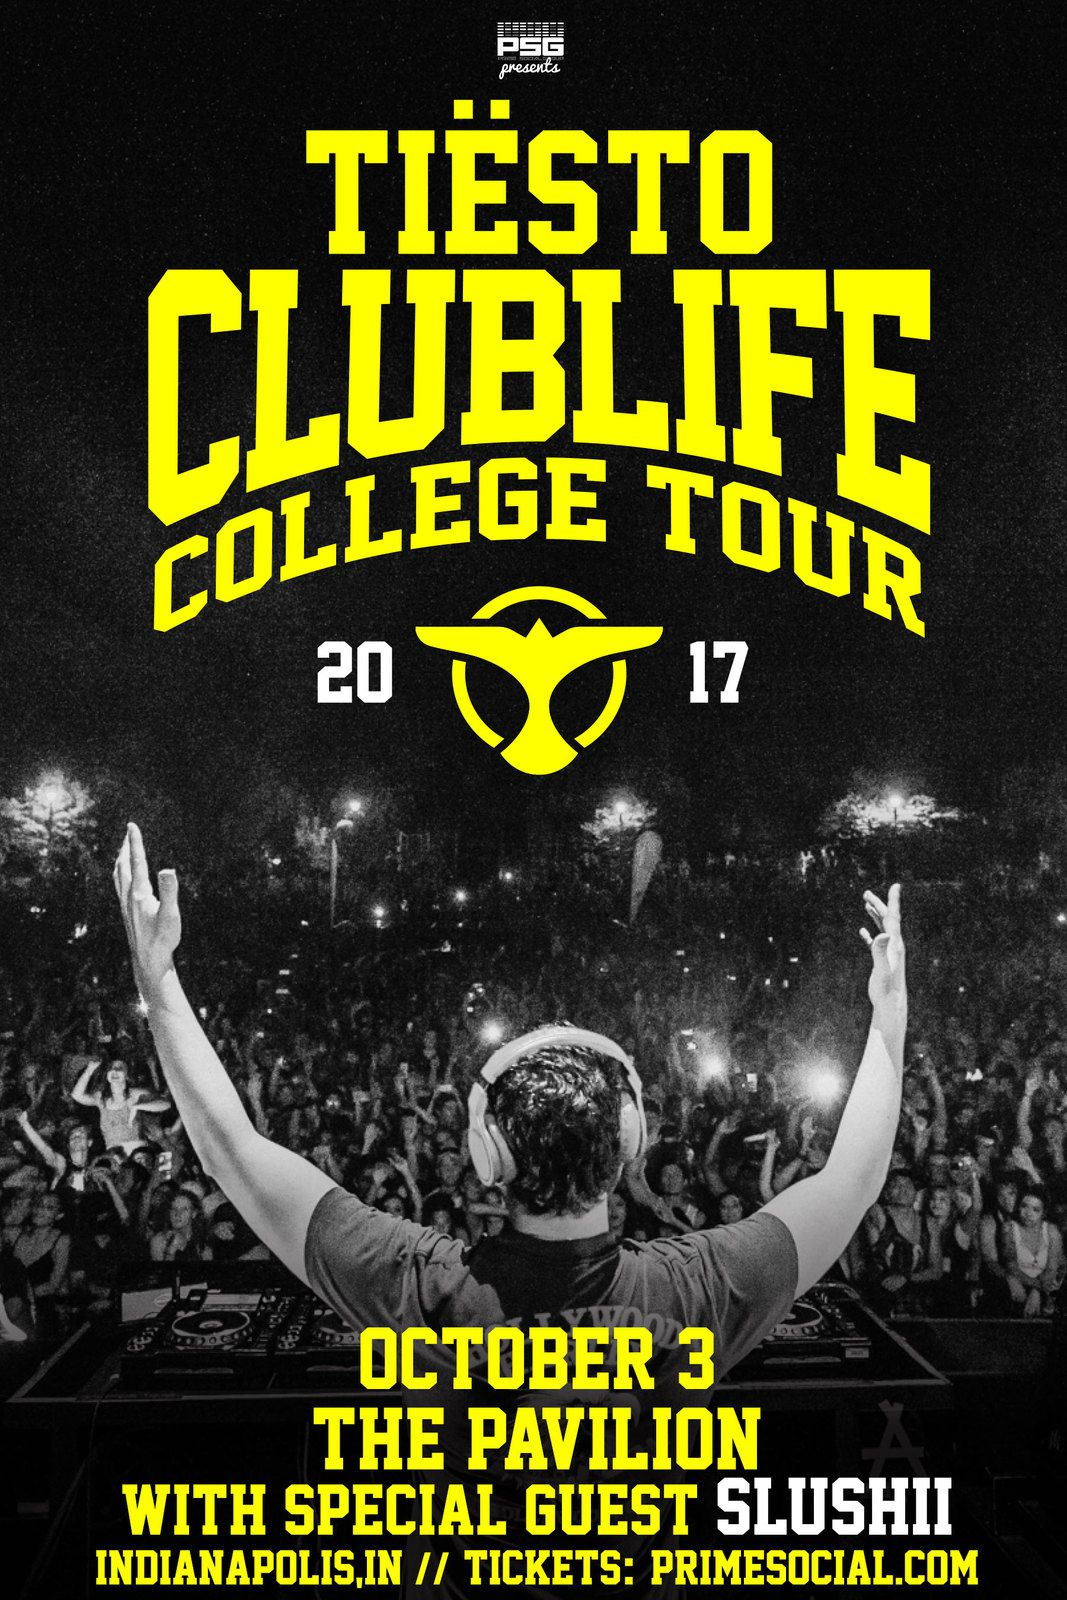 Tiësto date | Club Life College Tour | October 03, 2017 - Indianapolis, IN